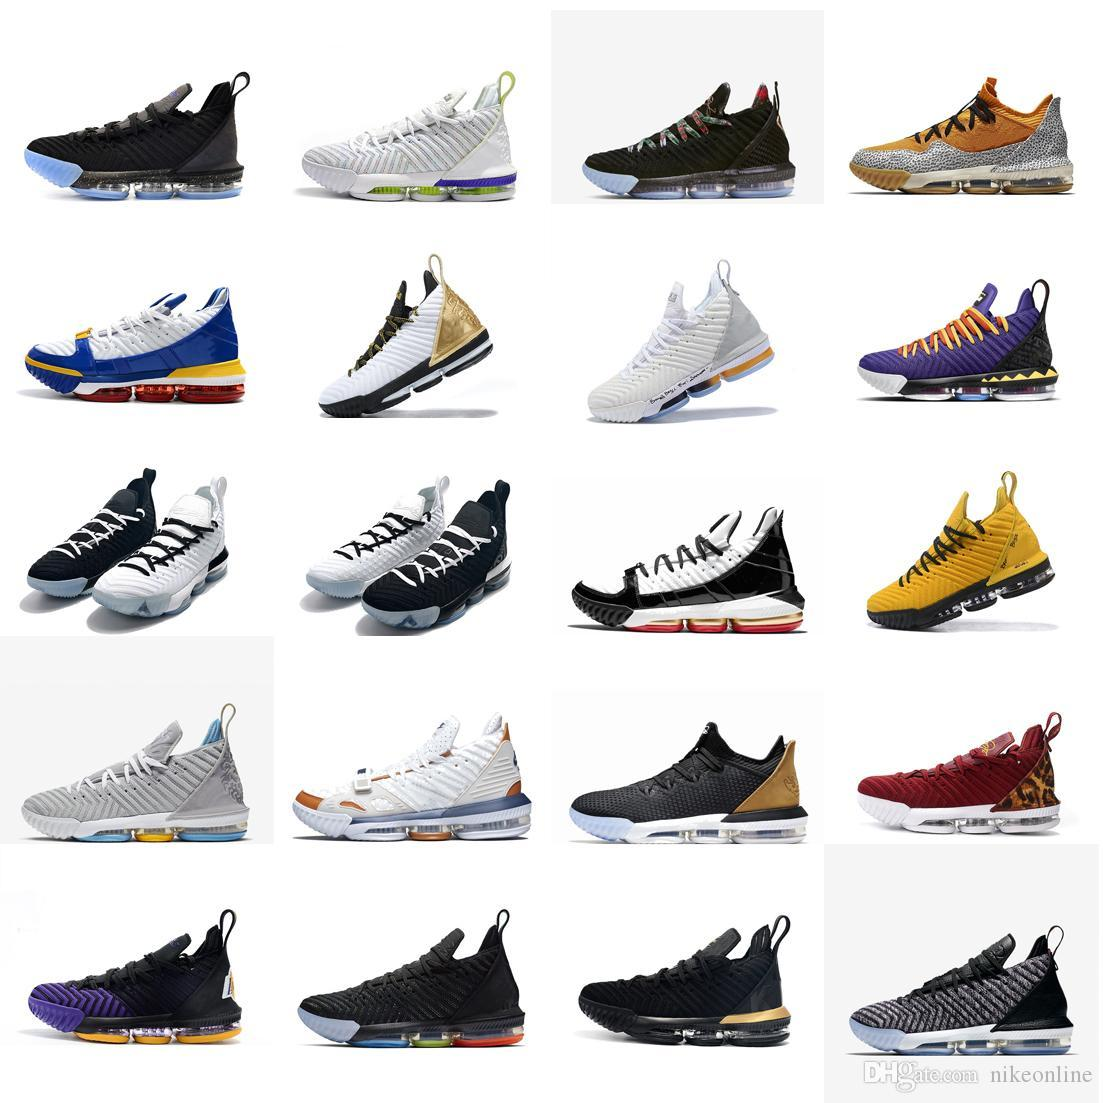 13a593d77b9 2019 Womens Lebron 16 Basketball Shoes Martin Remix Red Black White Bred  SuperBron Boys Girls Youth Kids Lebrons Xvi Low Sneakers Tennis With Box  From ...